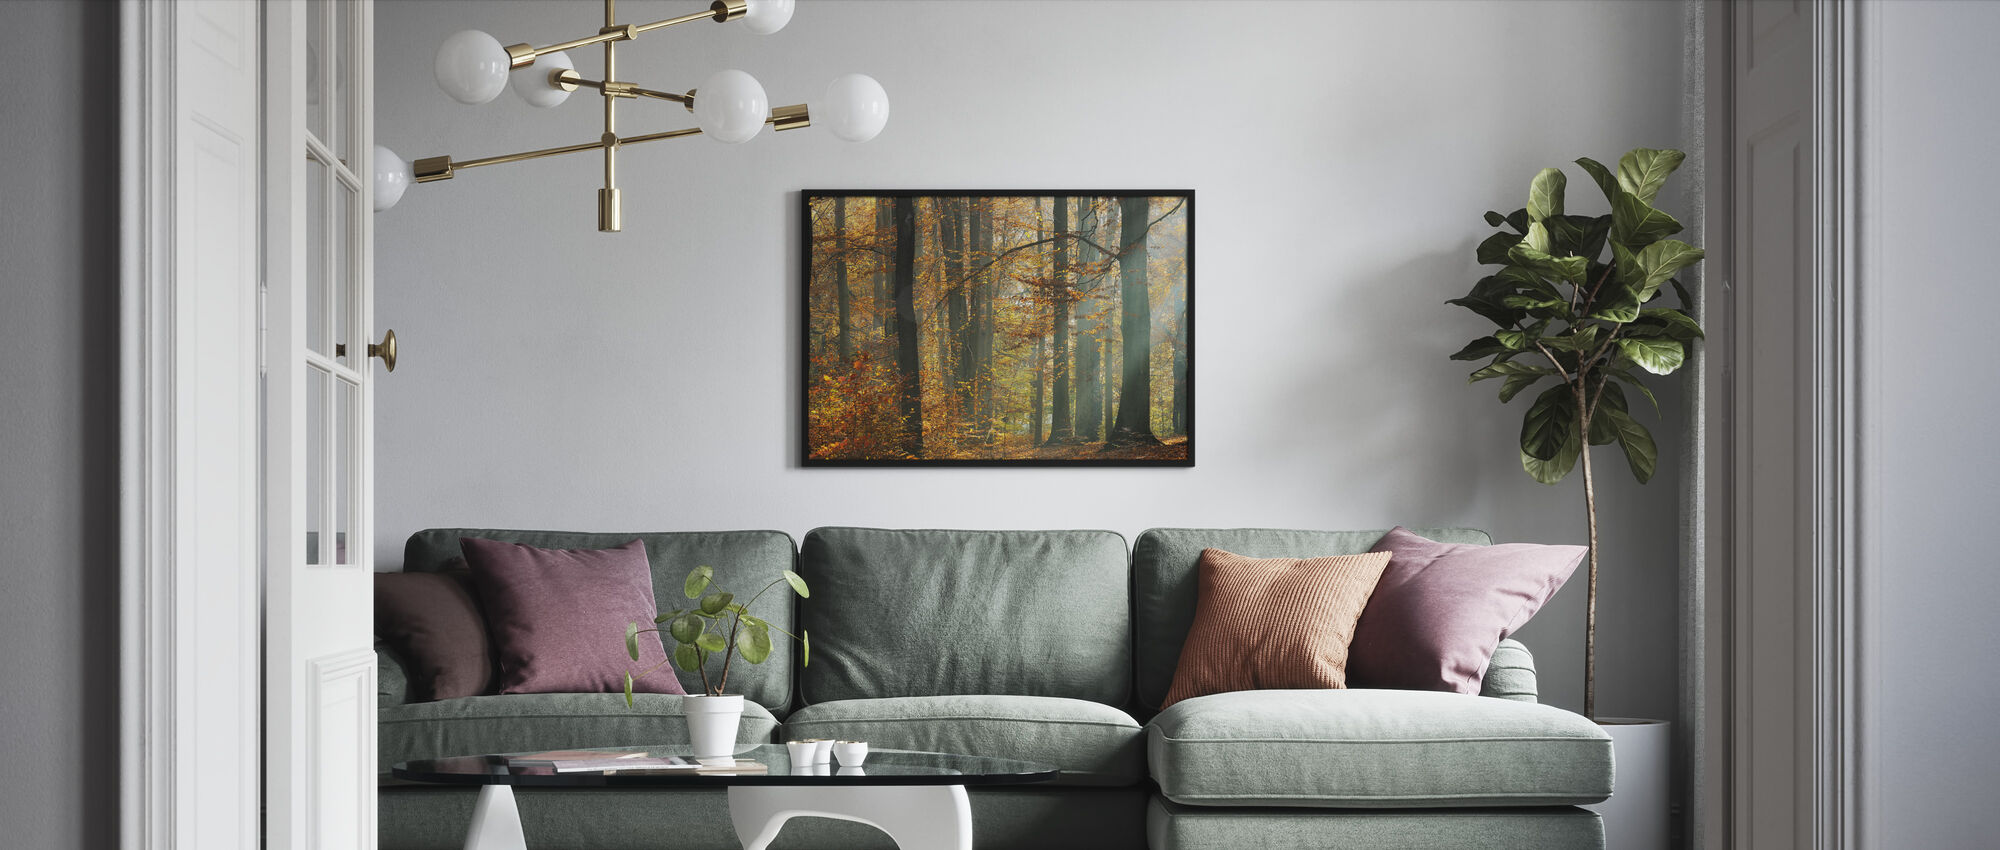 Sunbeams in a Colorful Autumnal Forest - Framed print - Living Room